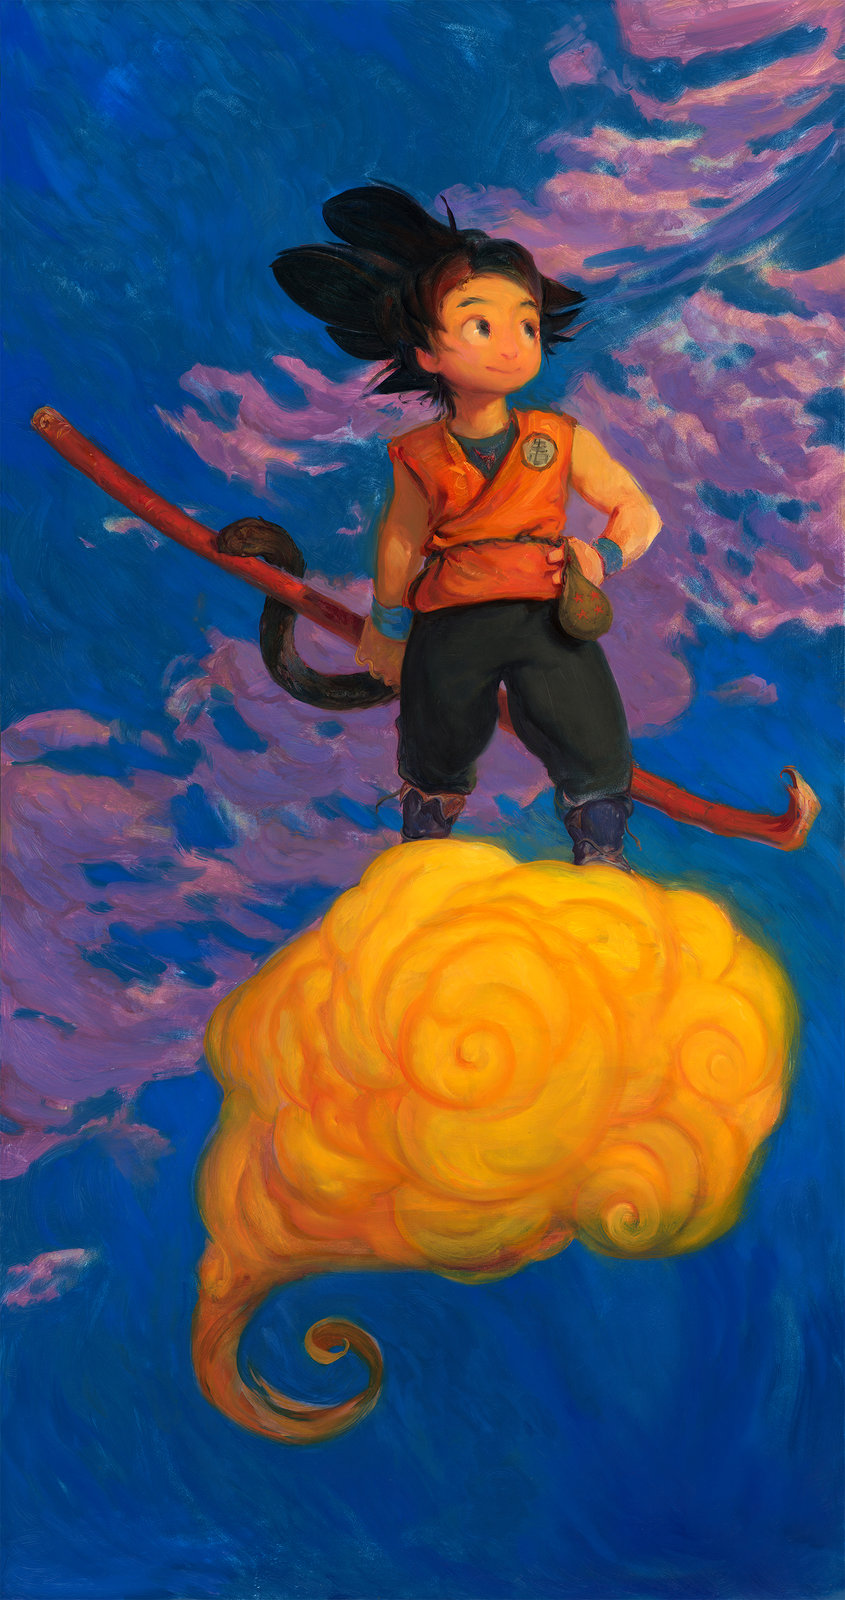 Wonderboy Son Goku - 4ft OIL PAINTING